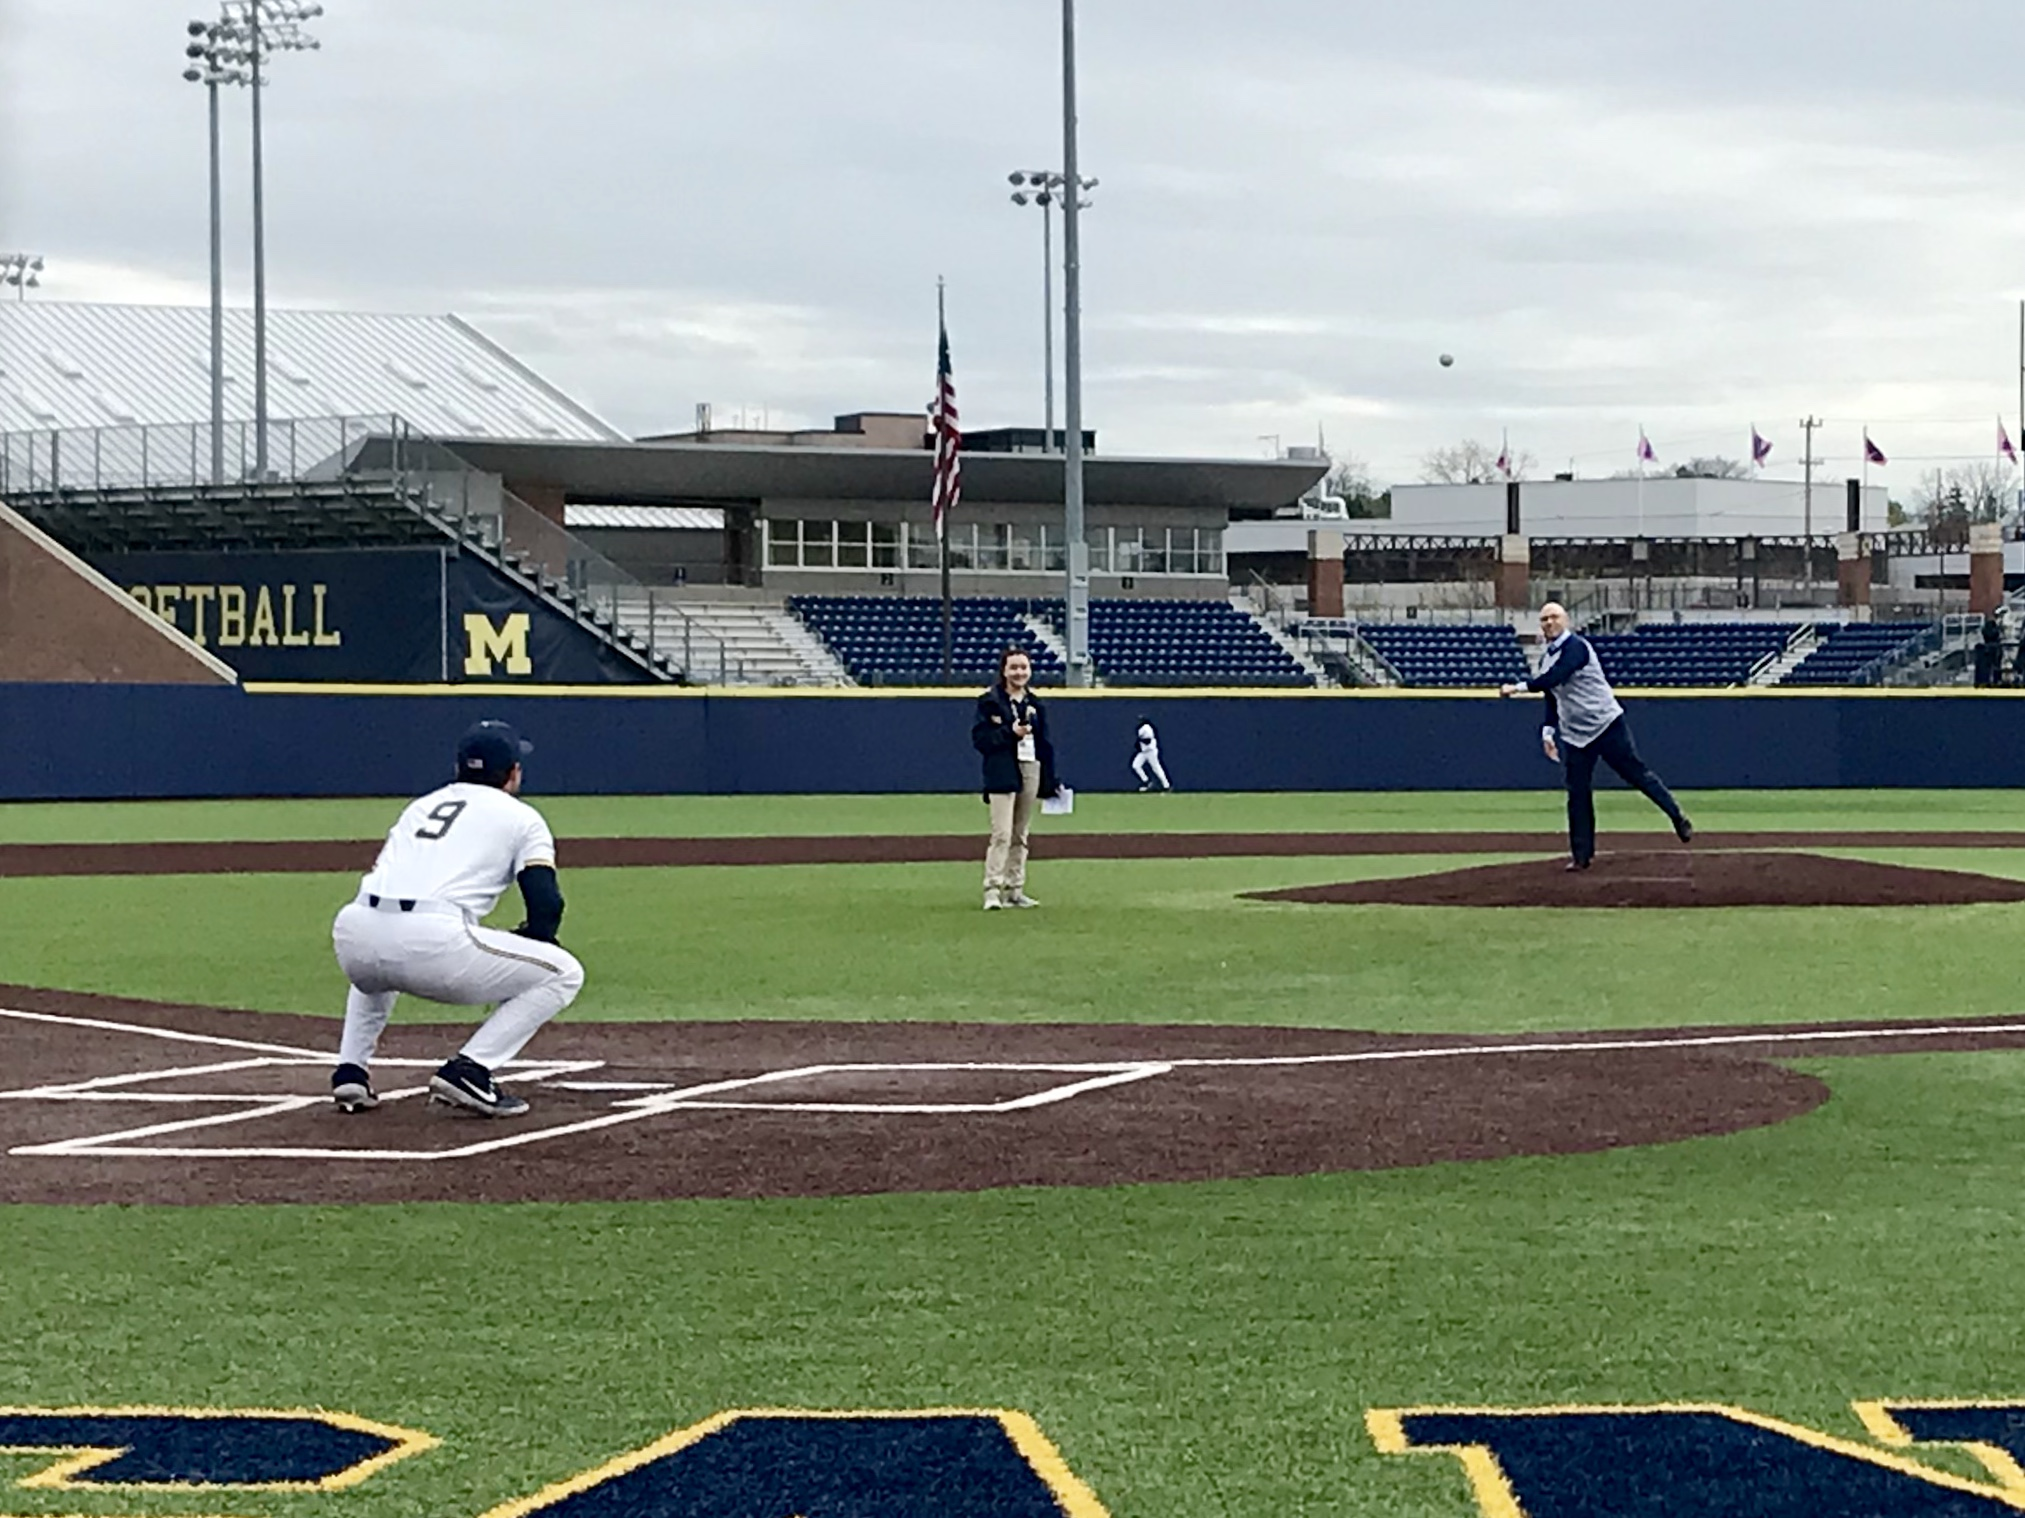 Stephen Goutman, M.D., M.S., throws out the first pitch